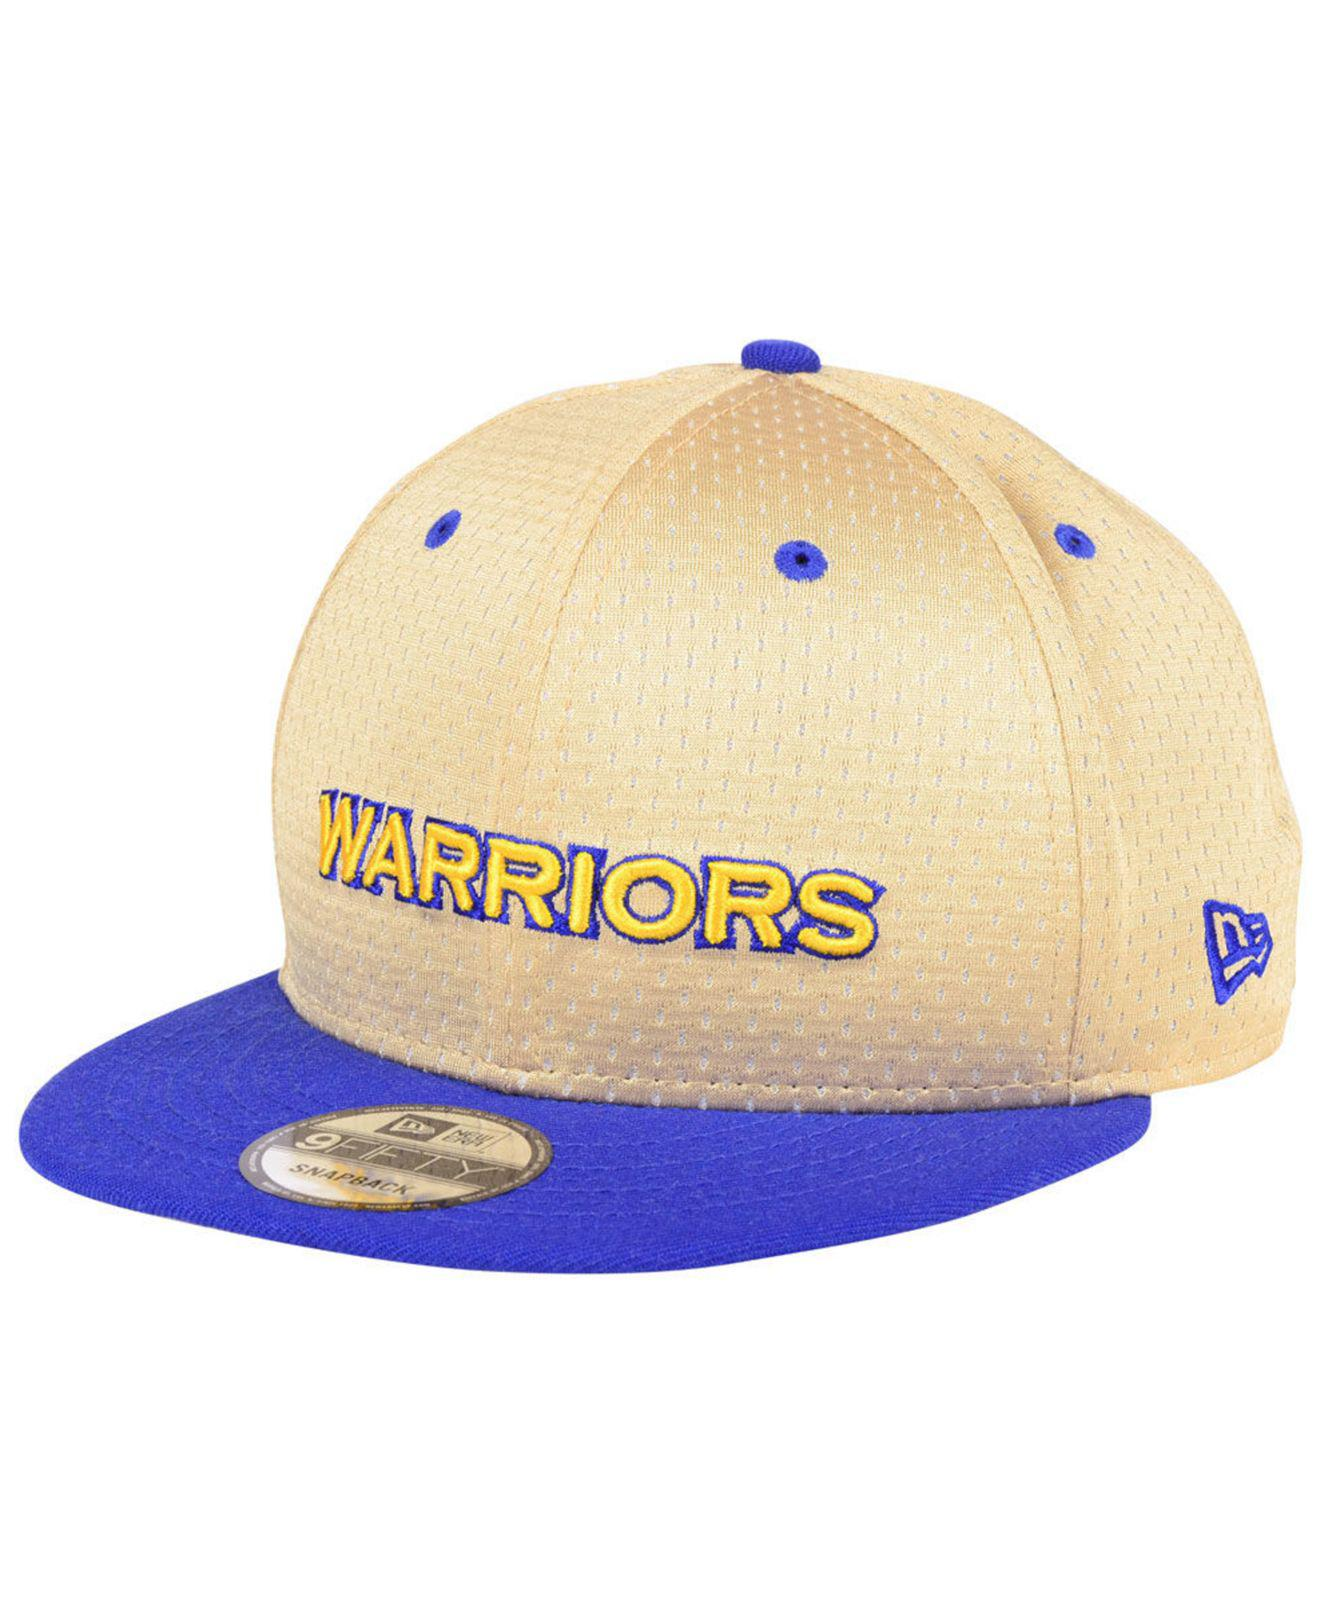 promo code f580c b1dca ... norway golden state warriors champagne 9fifty snapback cap for men lyst.  view fullscreen db9c6 89557